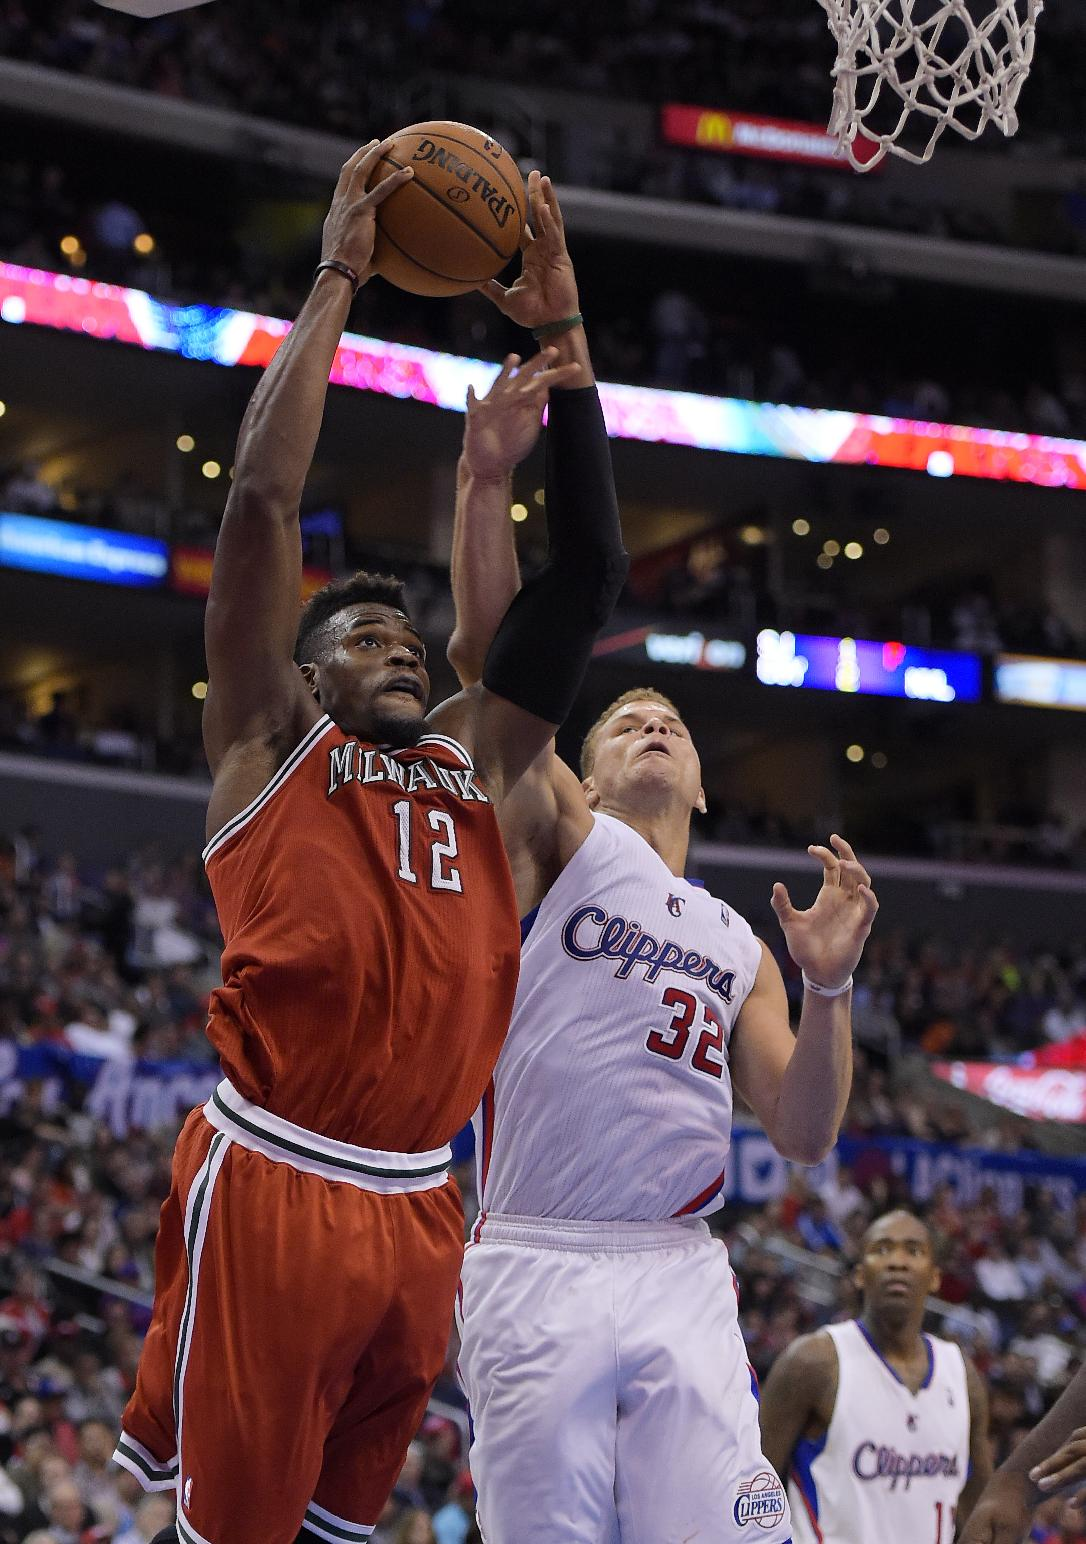 Milwaukee Bucks forward Jeff Adrien, left, goes up for a shot as Los Angeles Clippers forward Blake Griffin defends during the second half of an NBA basketball game, Monday, March 24, 2014, in Los Angeles. The Clippers won 106-98